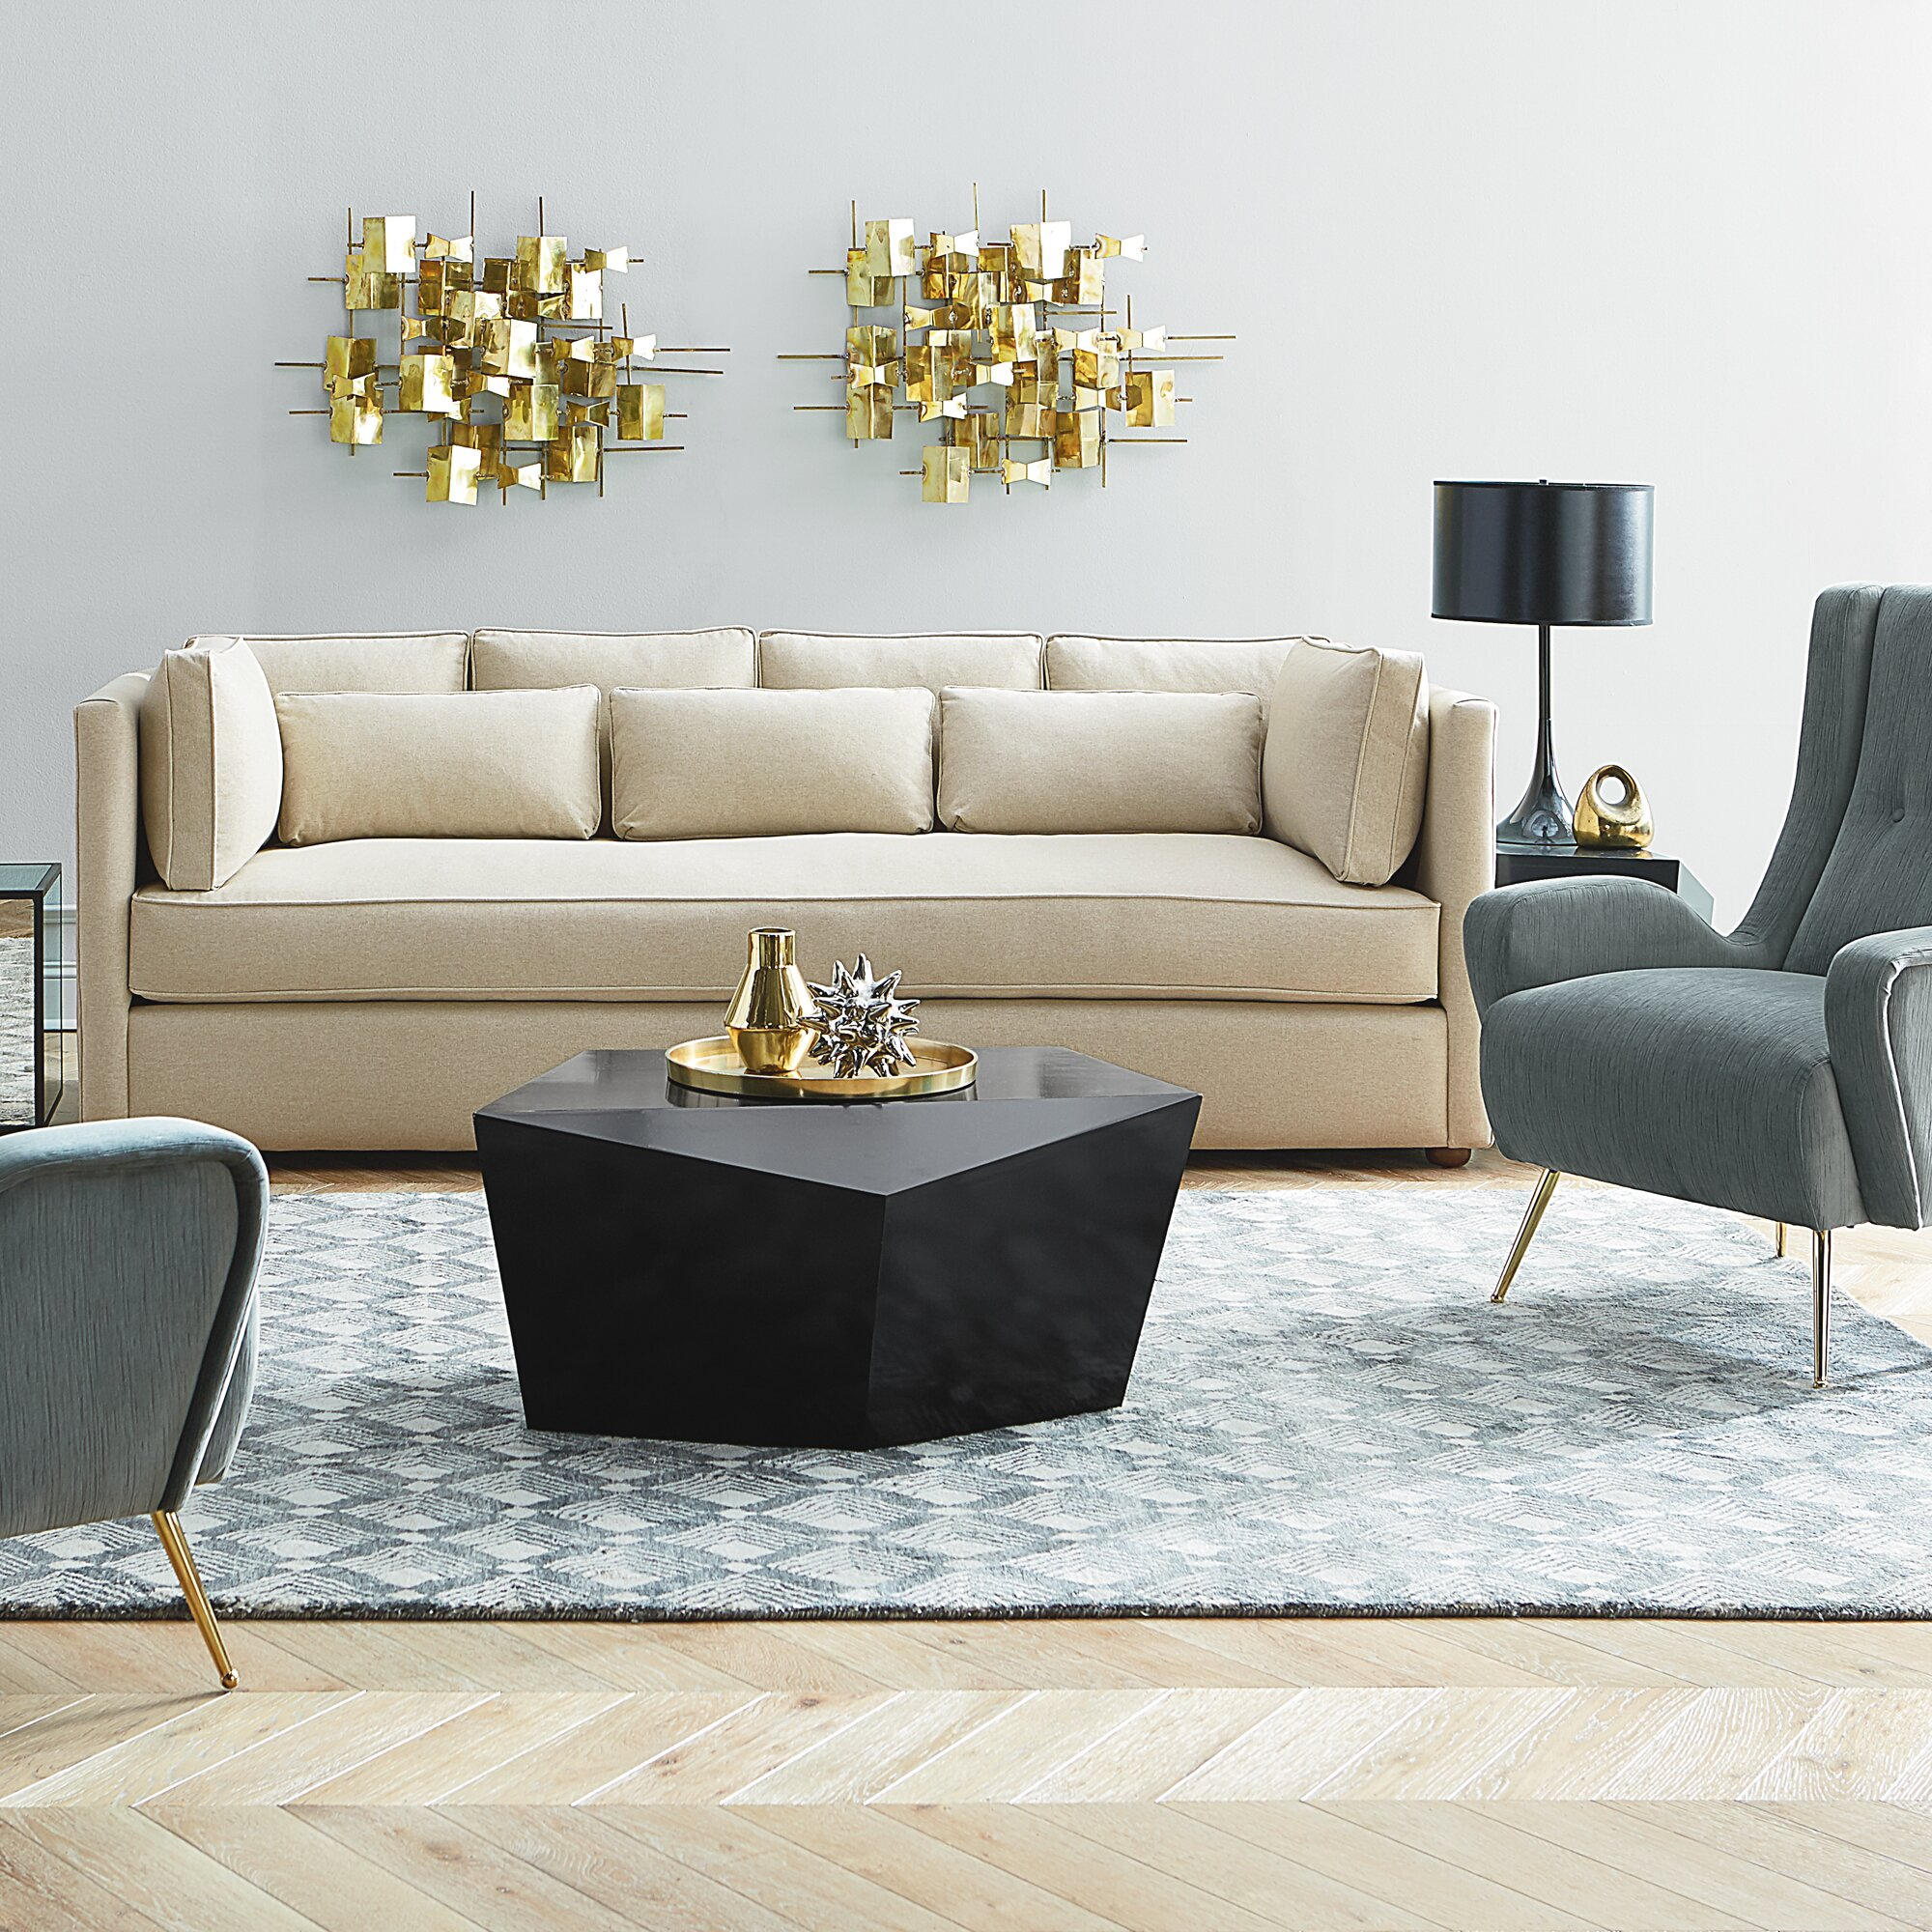 Dwell Studio Sofa Reviews Thecreativescientist Com